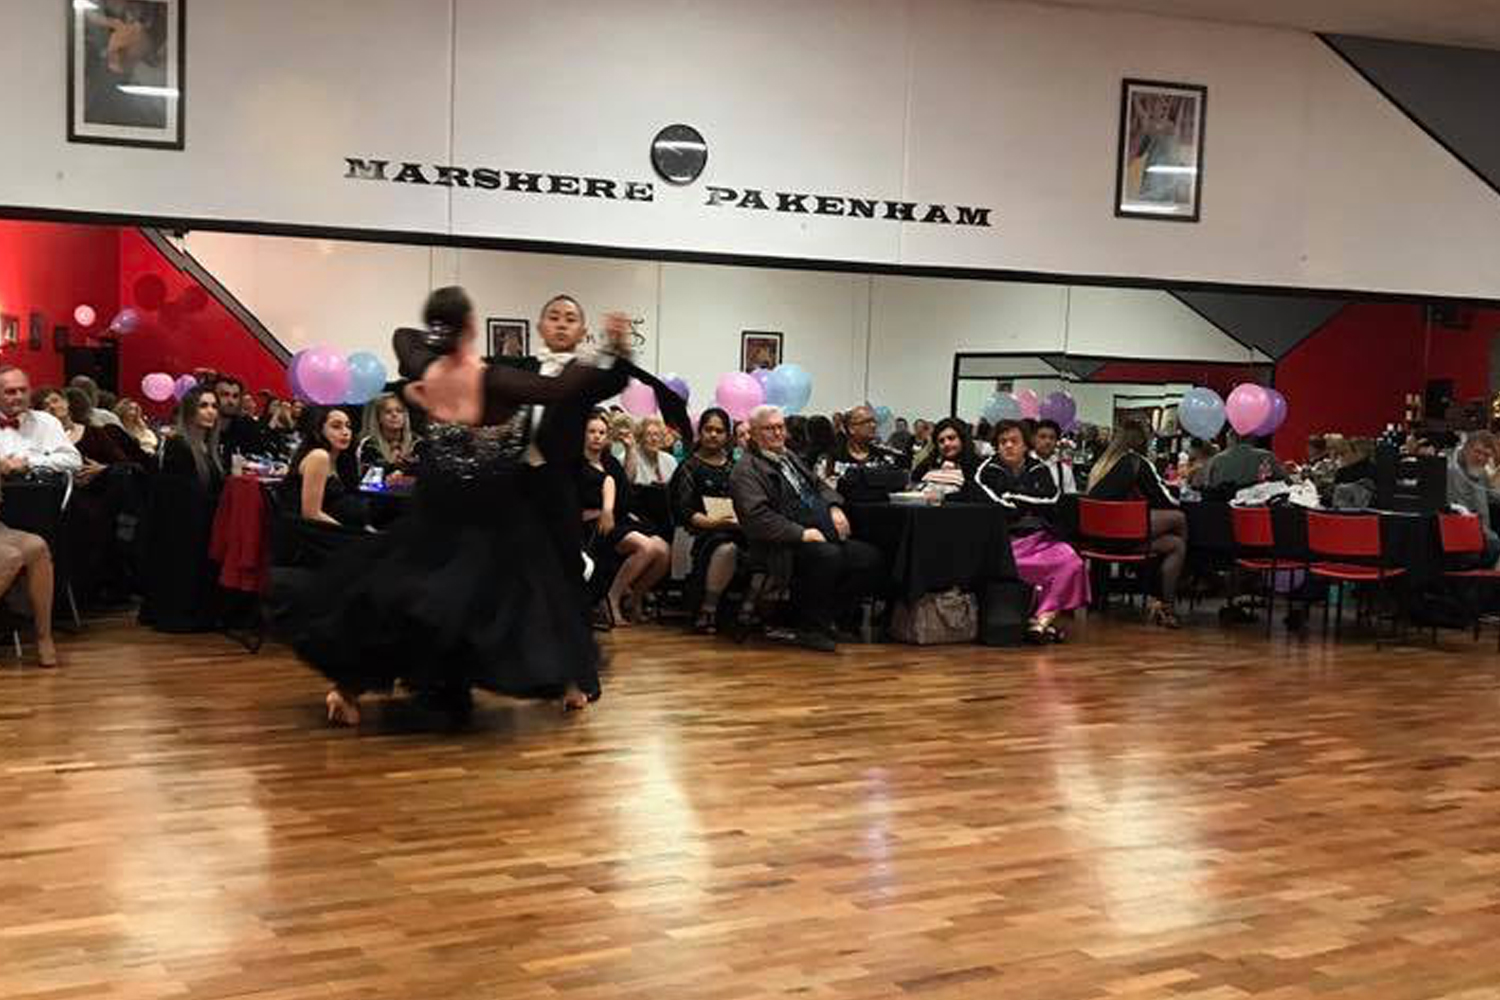 Have fun, socialise and meet new people while learning to dance